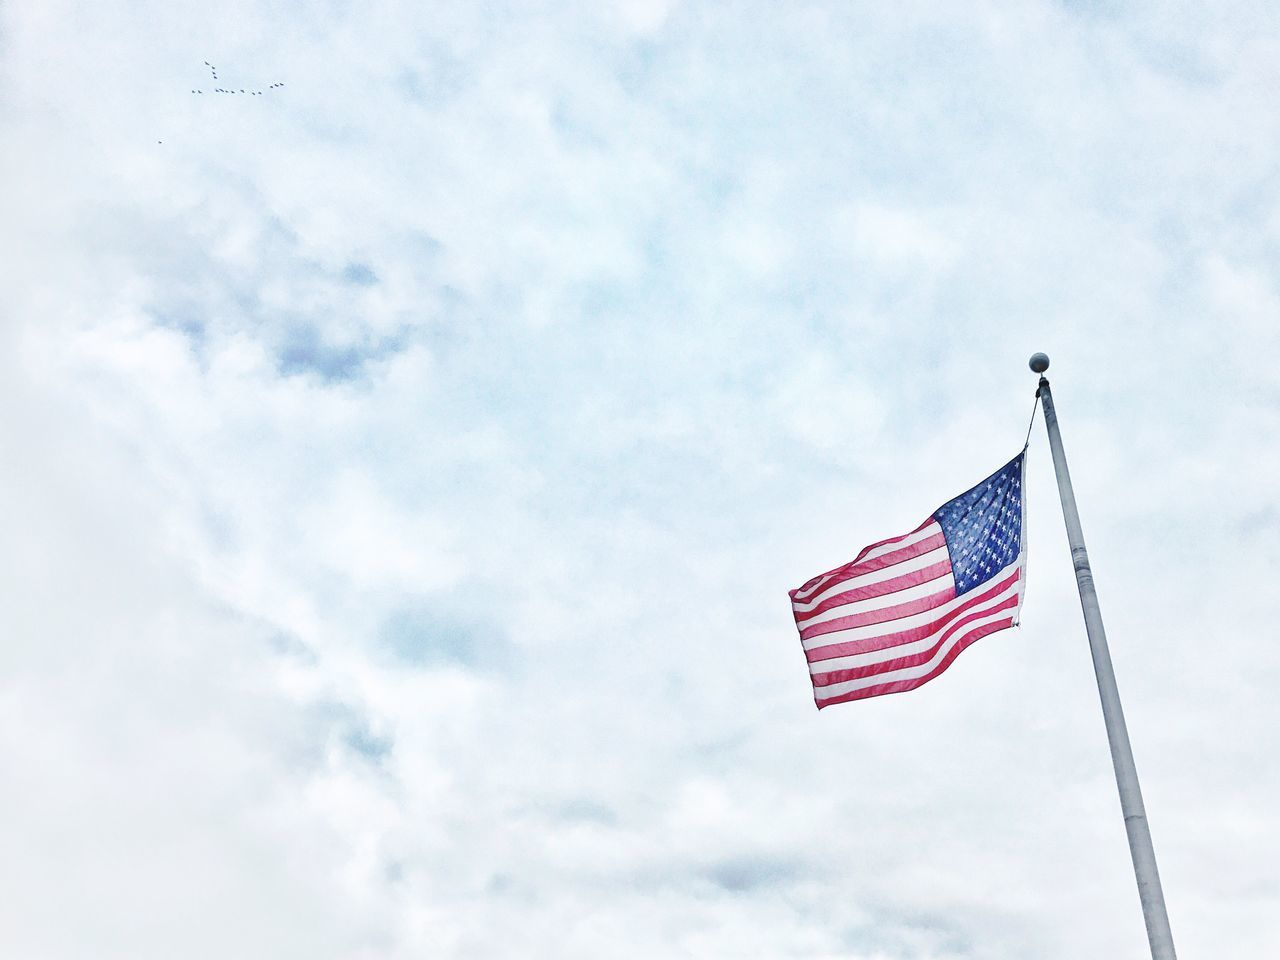 Hanging by a thread Patriotism Flag Low Angle View Striped Cultures Sky Stars And Stripes My Year My View Red No People Flag Pole Day Outdoors Chance Encounters American Flag Birds Wind Windy President Presidential Election 2016 Patriotic Patriot USA United States America